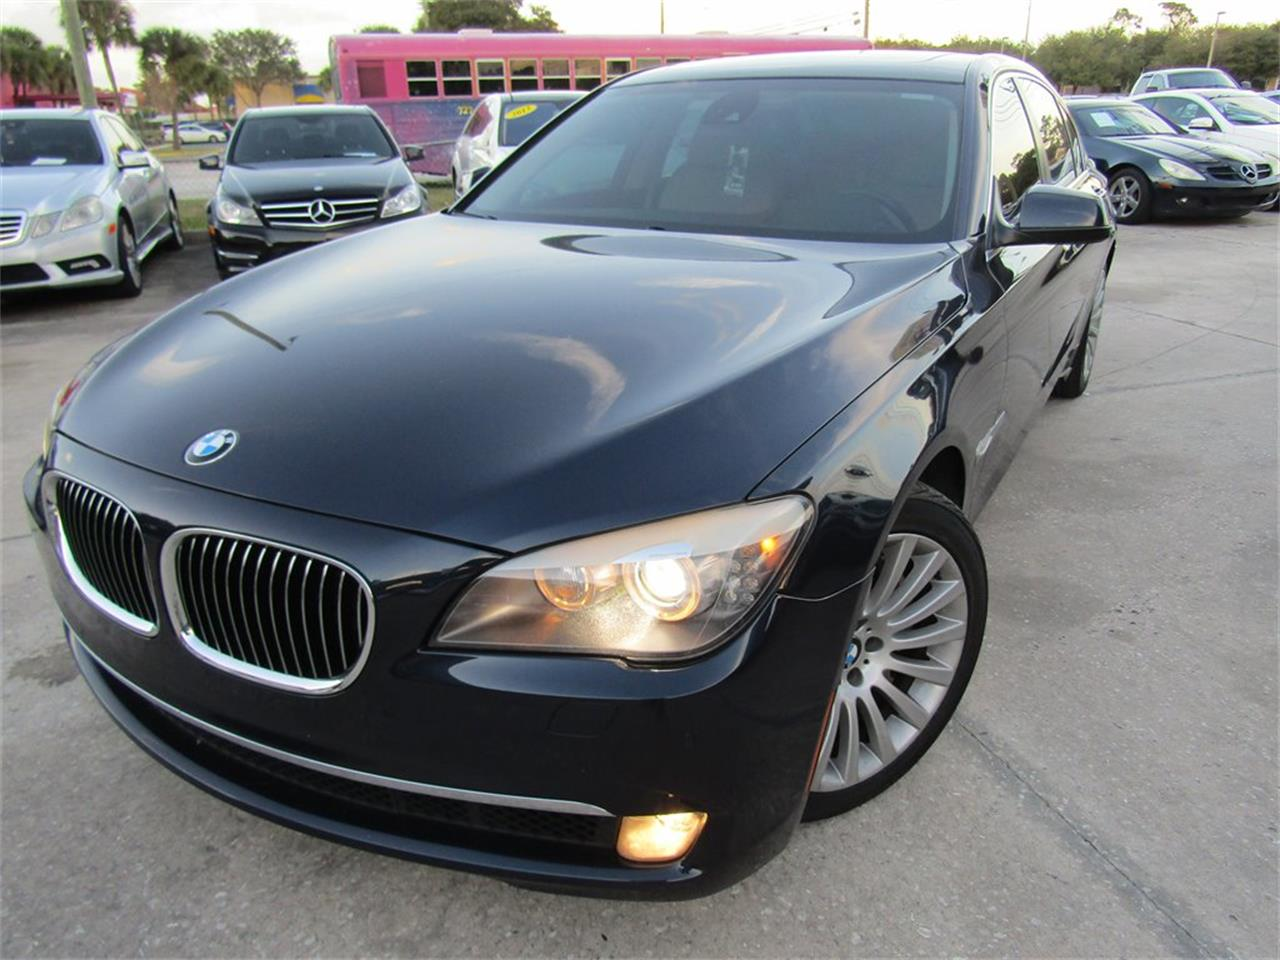 2012 BMW 7 Series (CC-1314275) for sale in Orlando, Florida